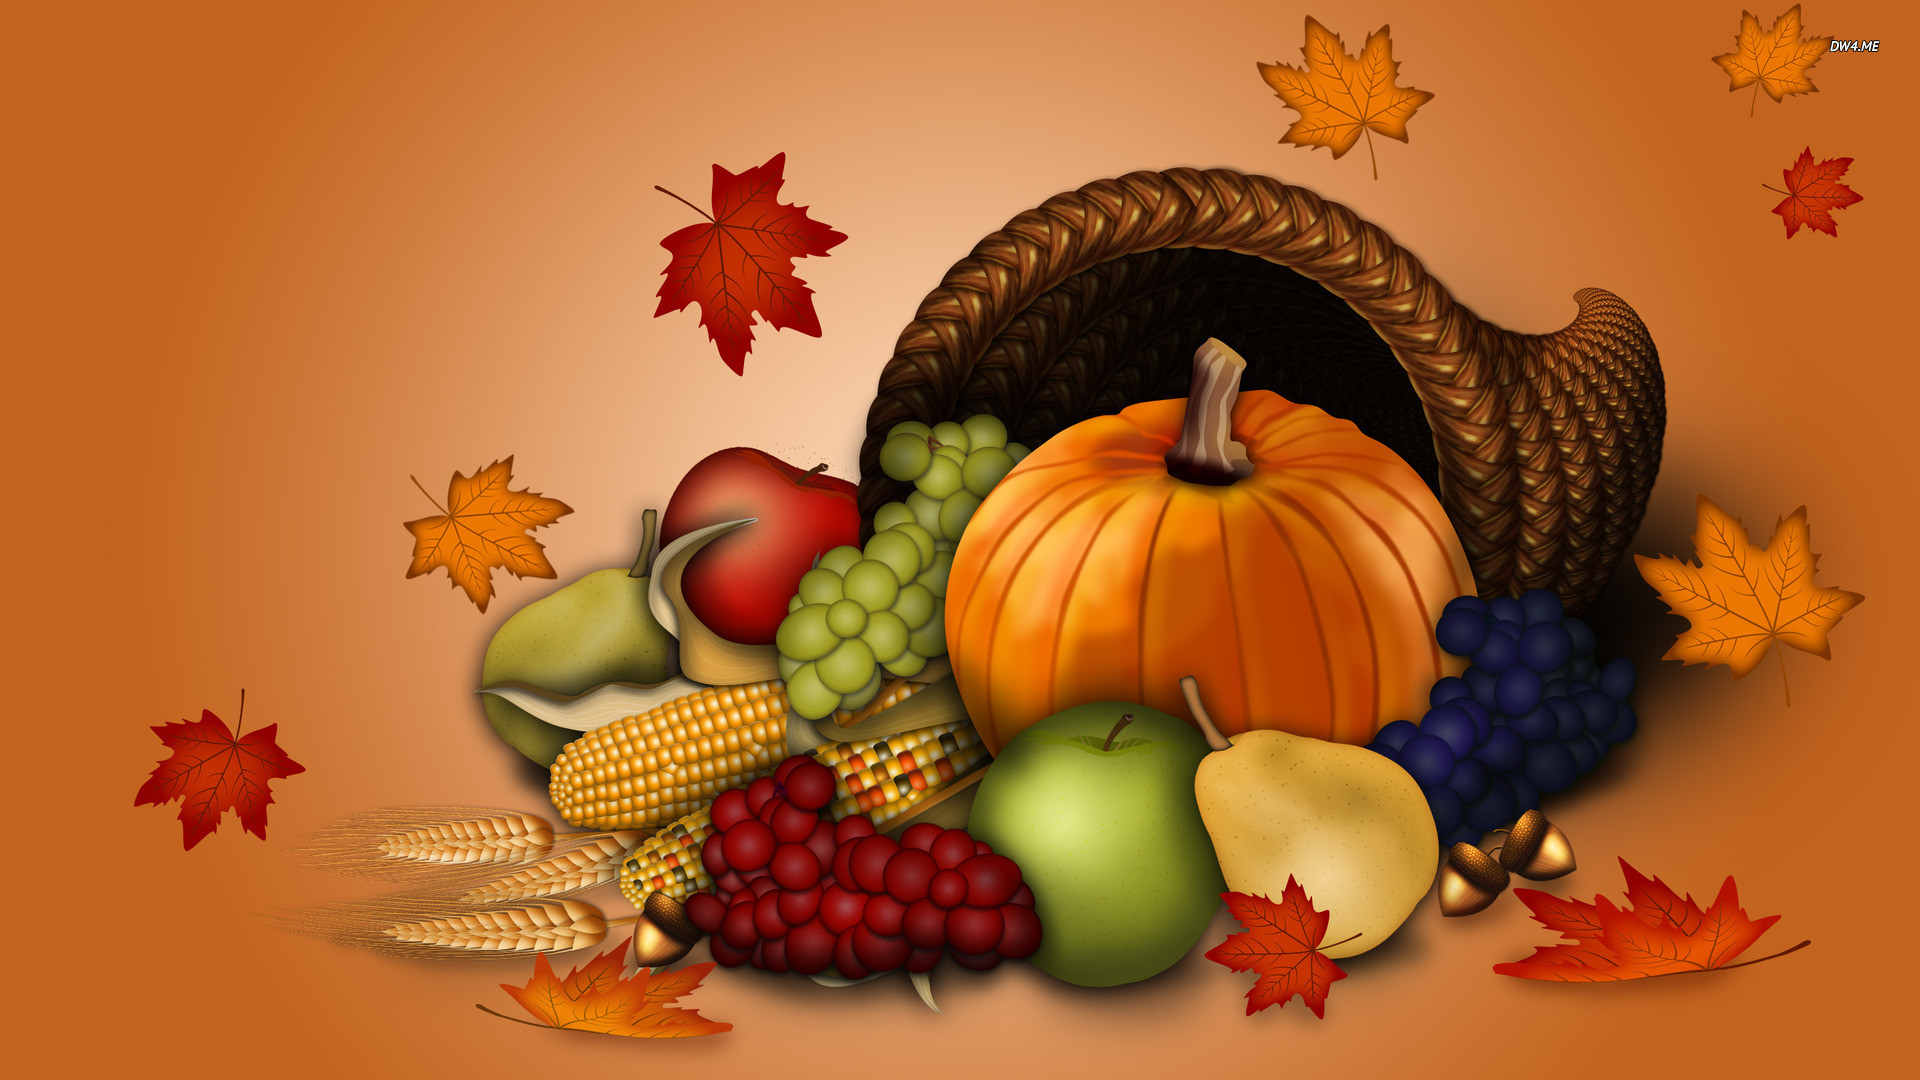 Thanksgiving Backgrounds Thanksgiving Background Images | HD Wallpapers |  Pinterest | Thanksgiving background, 3d wallpaper and Wallpaper